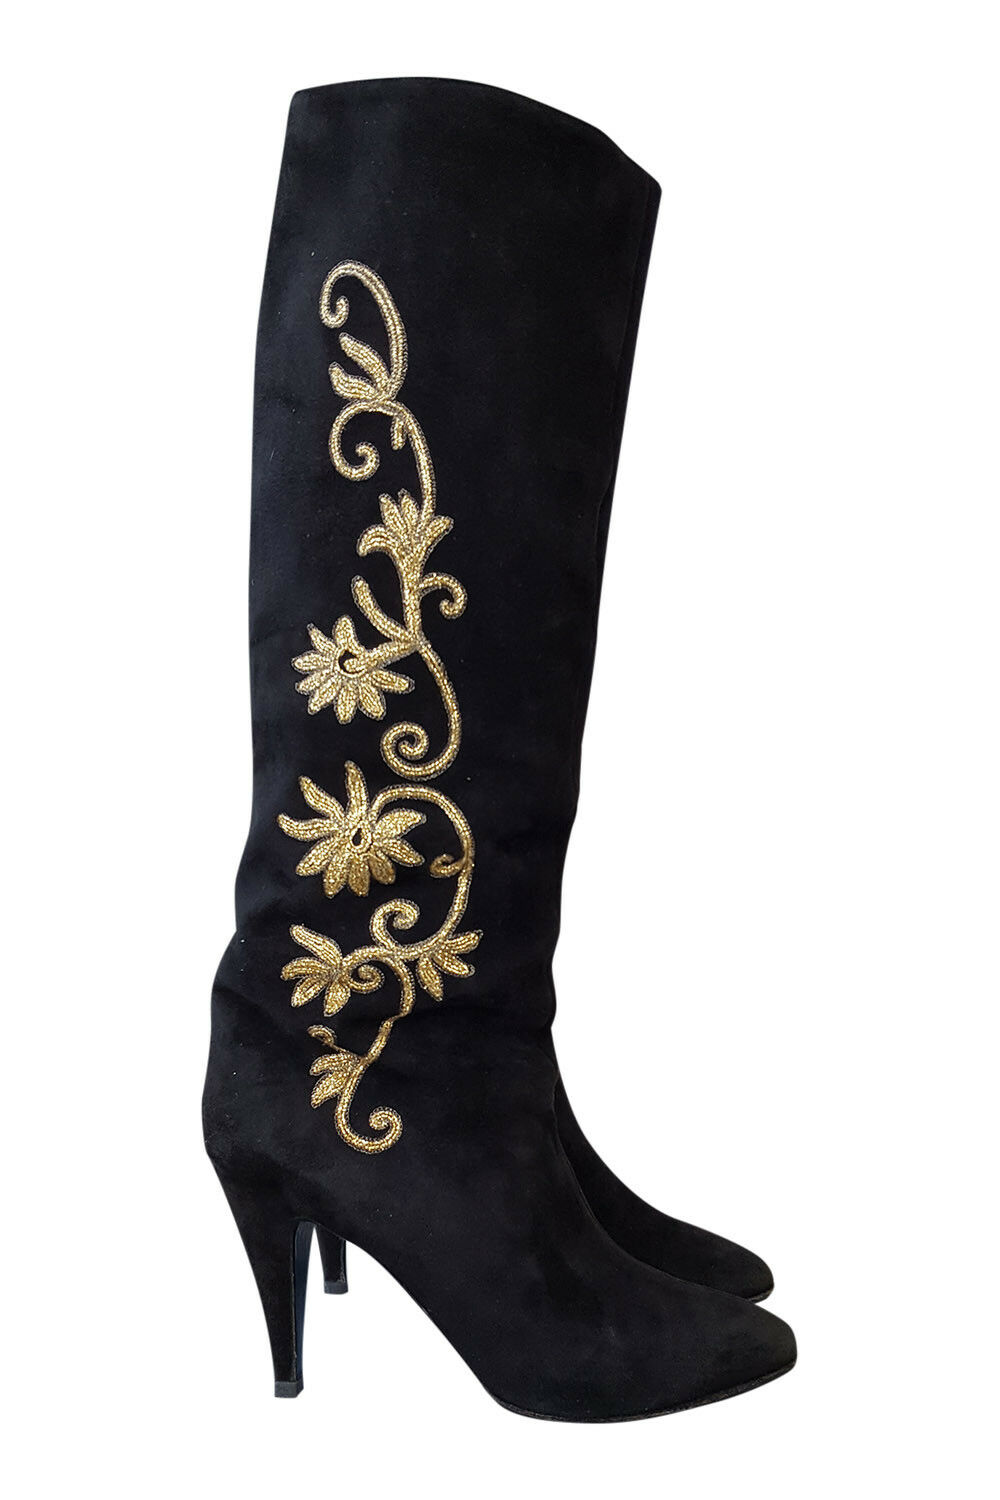 *ROGER VIVIER* BLACK AND GOLD SUEDE KNEE HIGH BOOTS (9)